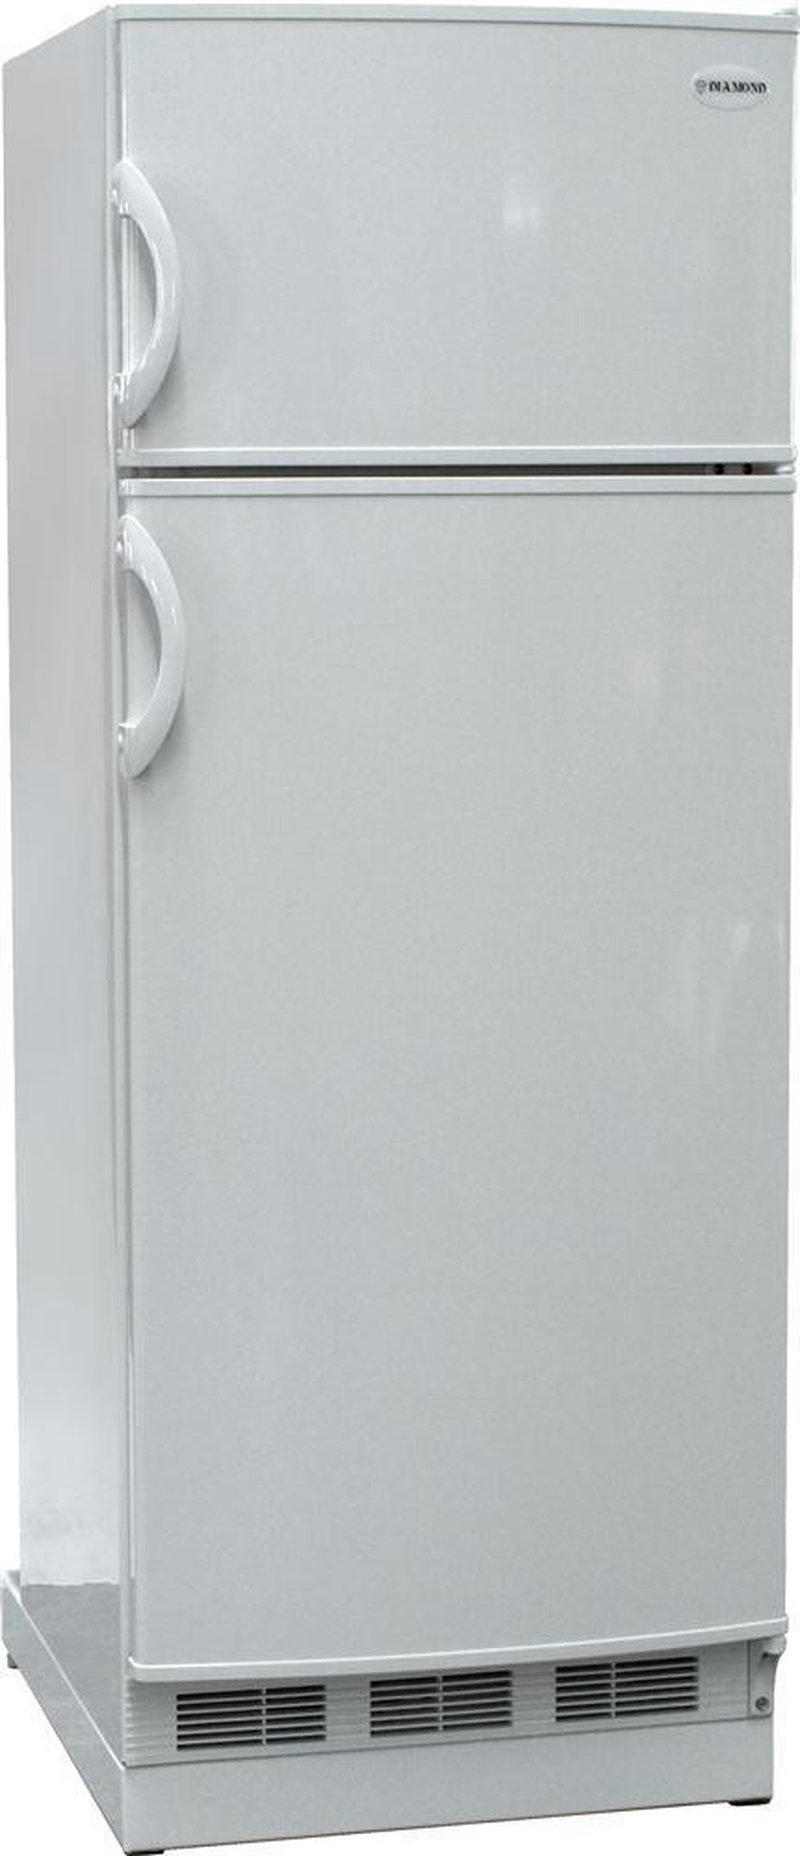 New Diamond Designer 10 Cu Ft Gas LP Propane White Top Freezer Refrigerator